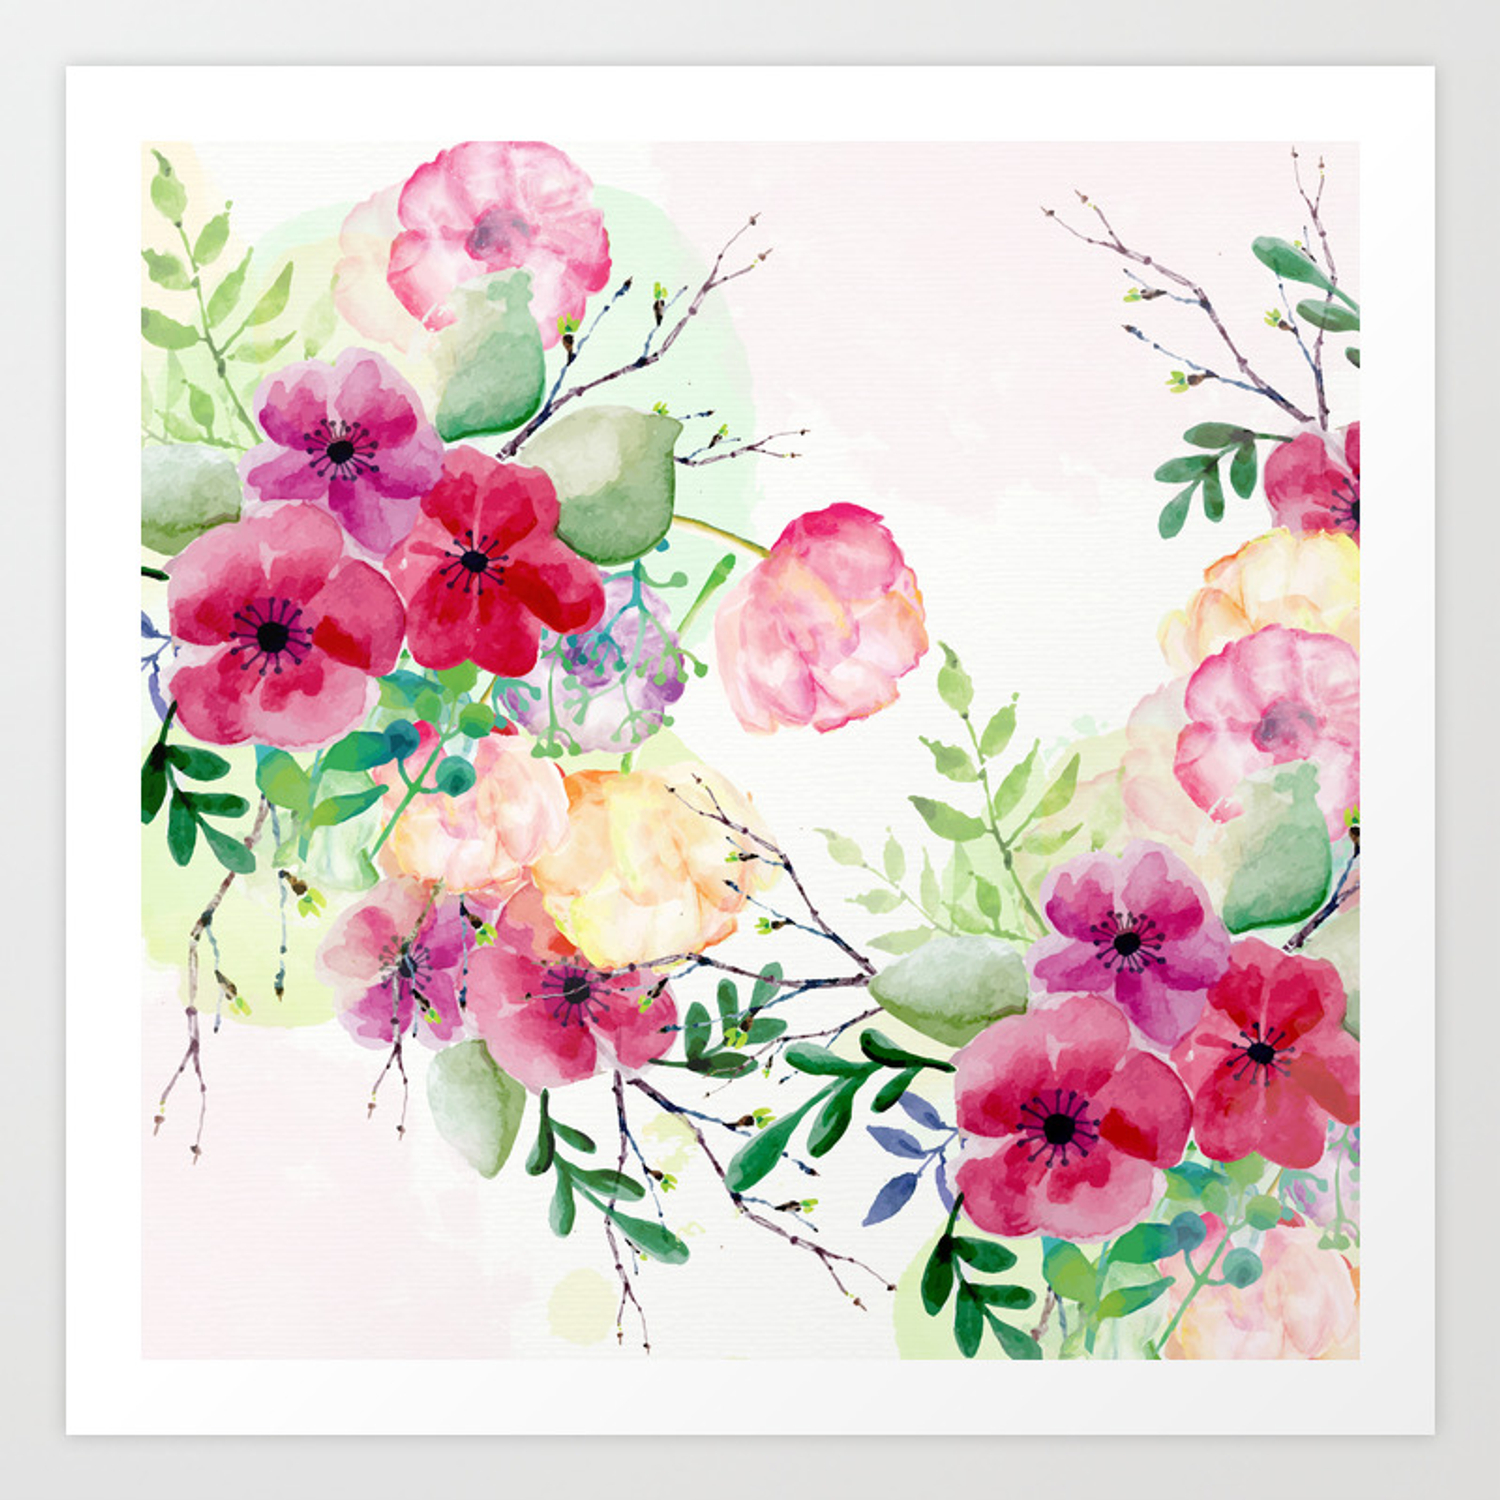 Vintage Flowers Watercolor Floral Painting Art Print By Cadinera